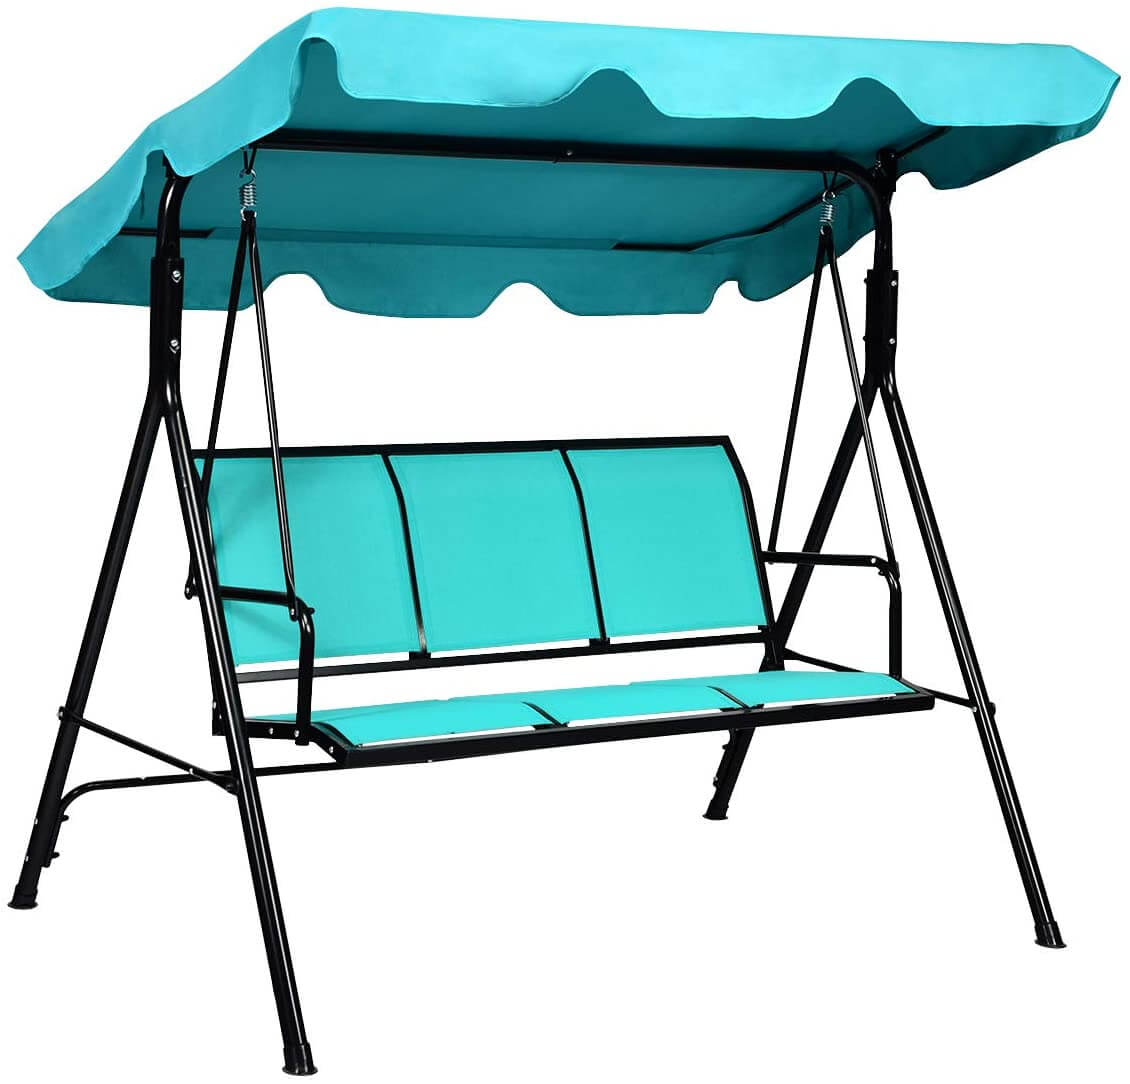 3 PERSON PATIO SWING WITH CANOPY SIMPLE AND ELEGANT